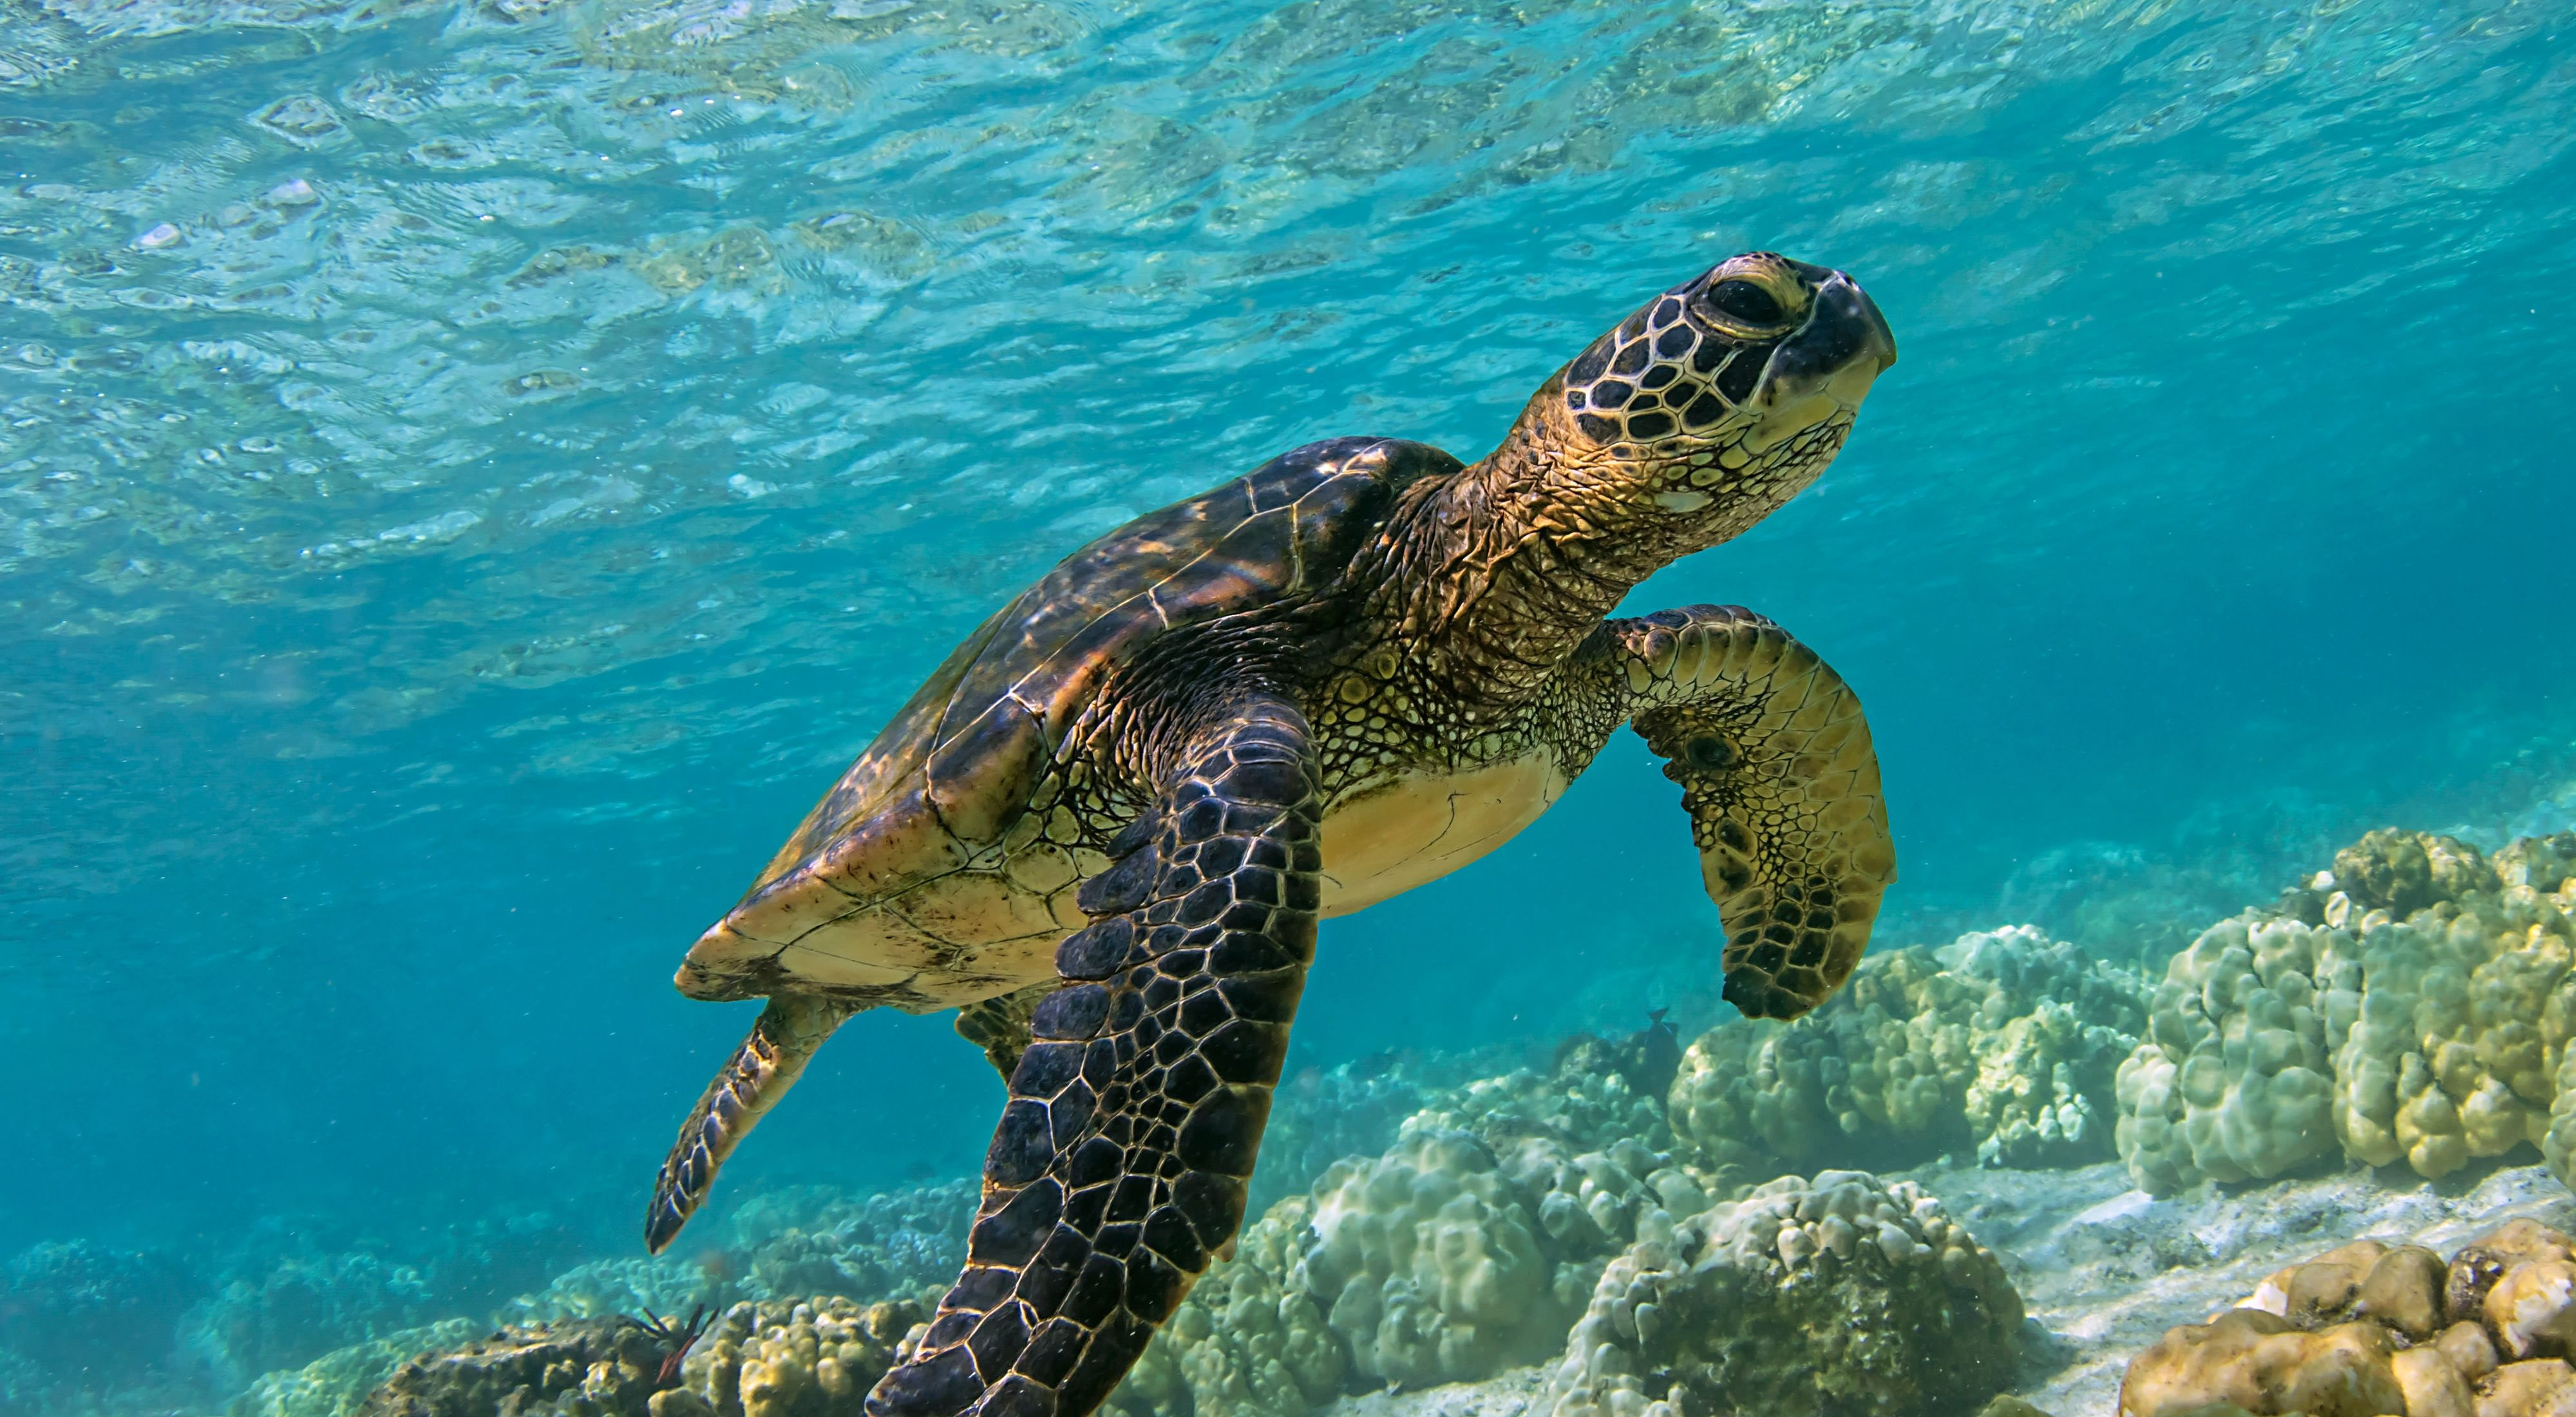 a small sea turtle swimming in clear, blue water